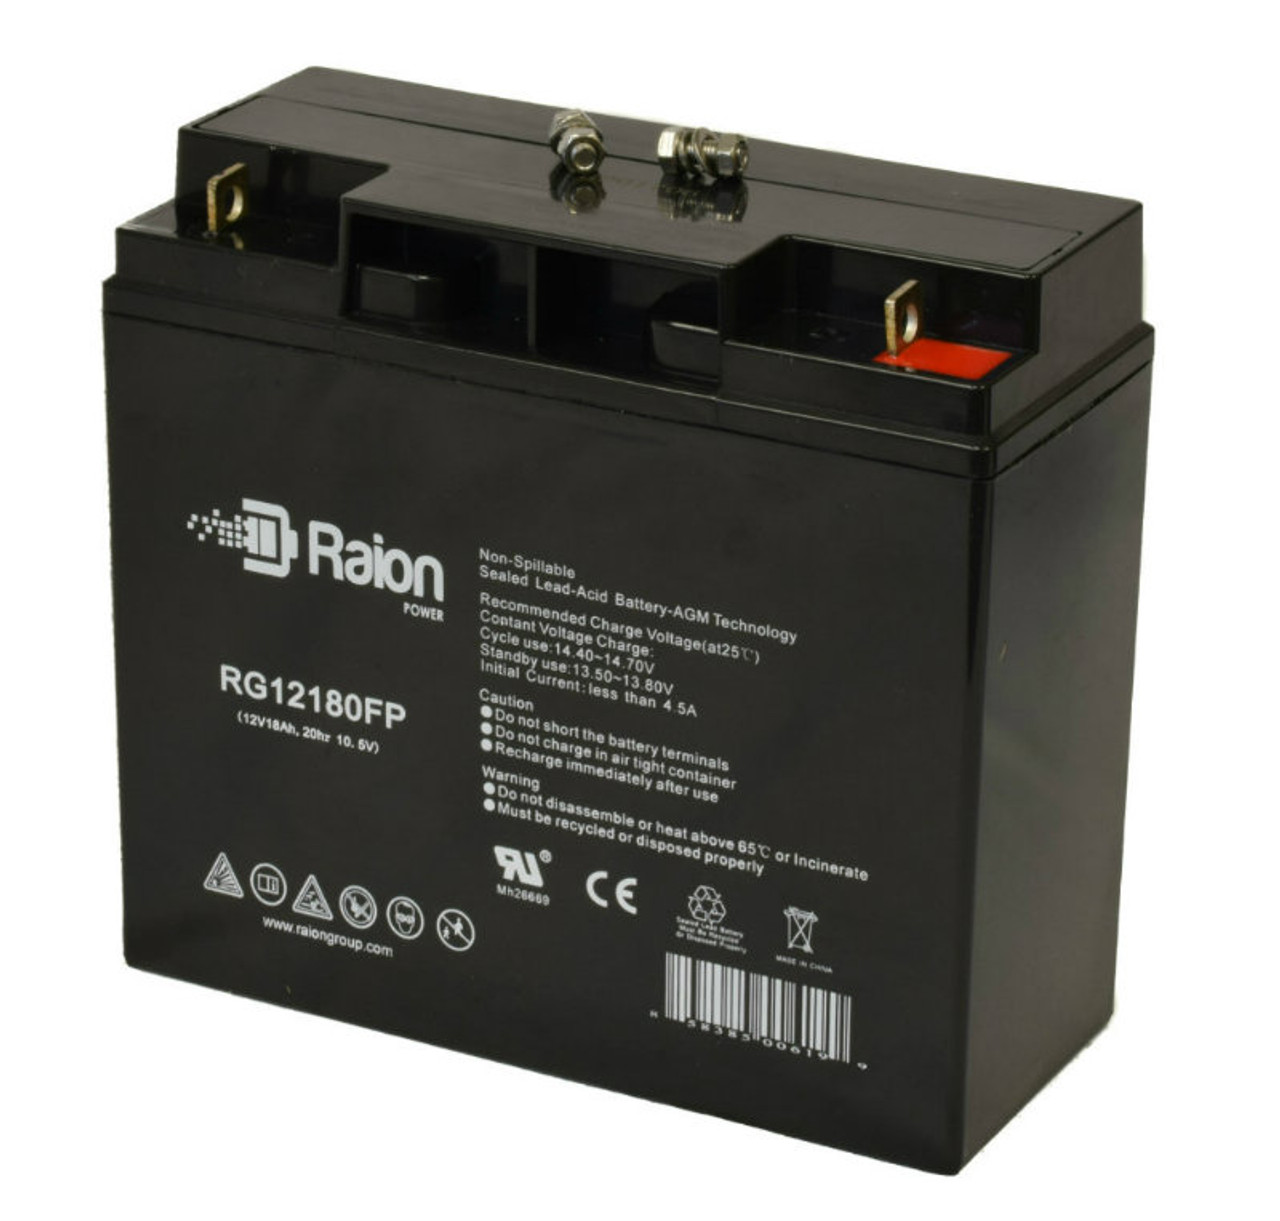 Raion Power RG12180FP Replacement Battery For Merits Pioneer 2 S246 Deluxe Mobility Scooter